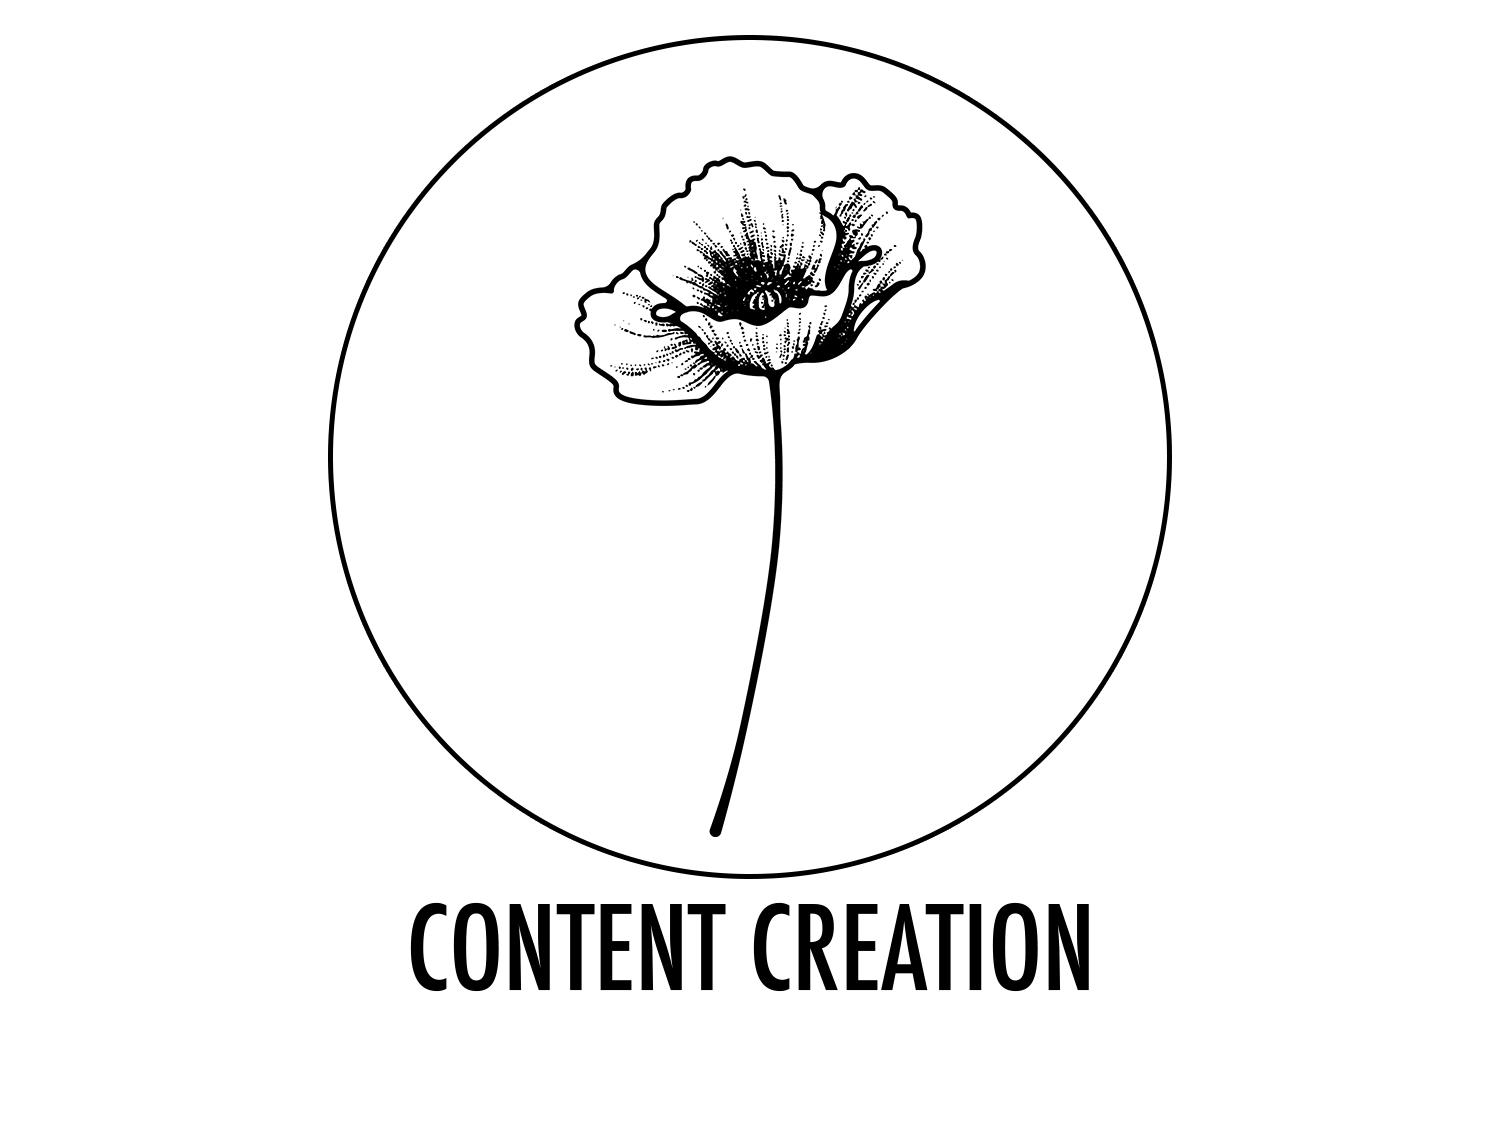 Media, done right. - Don't let poor content ruin your brand's reputation.